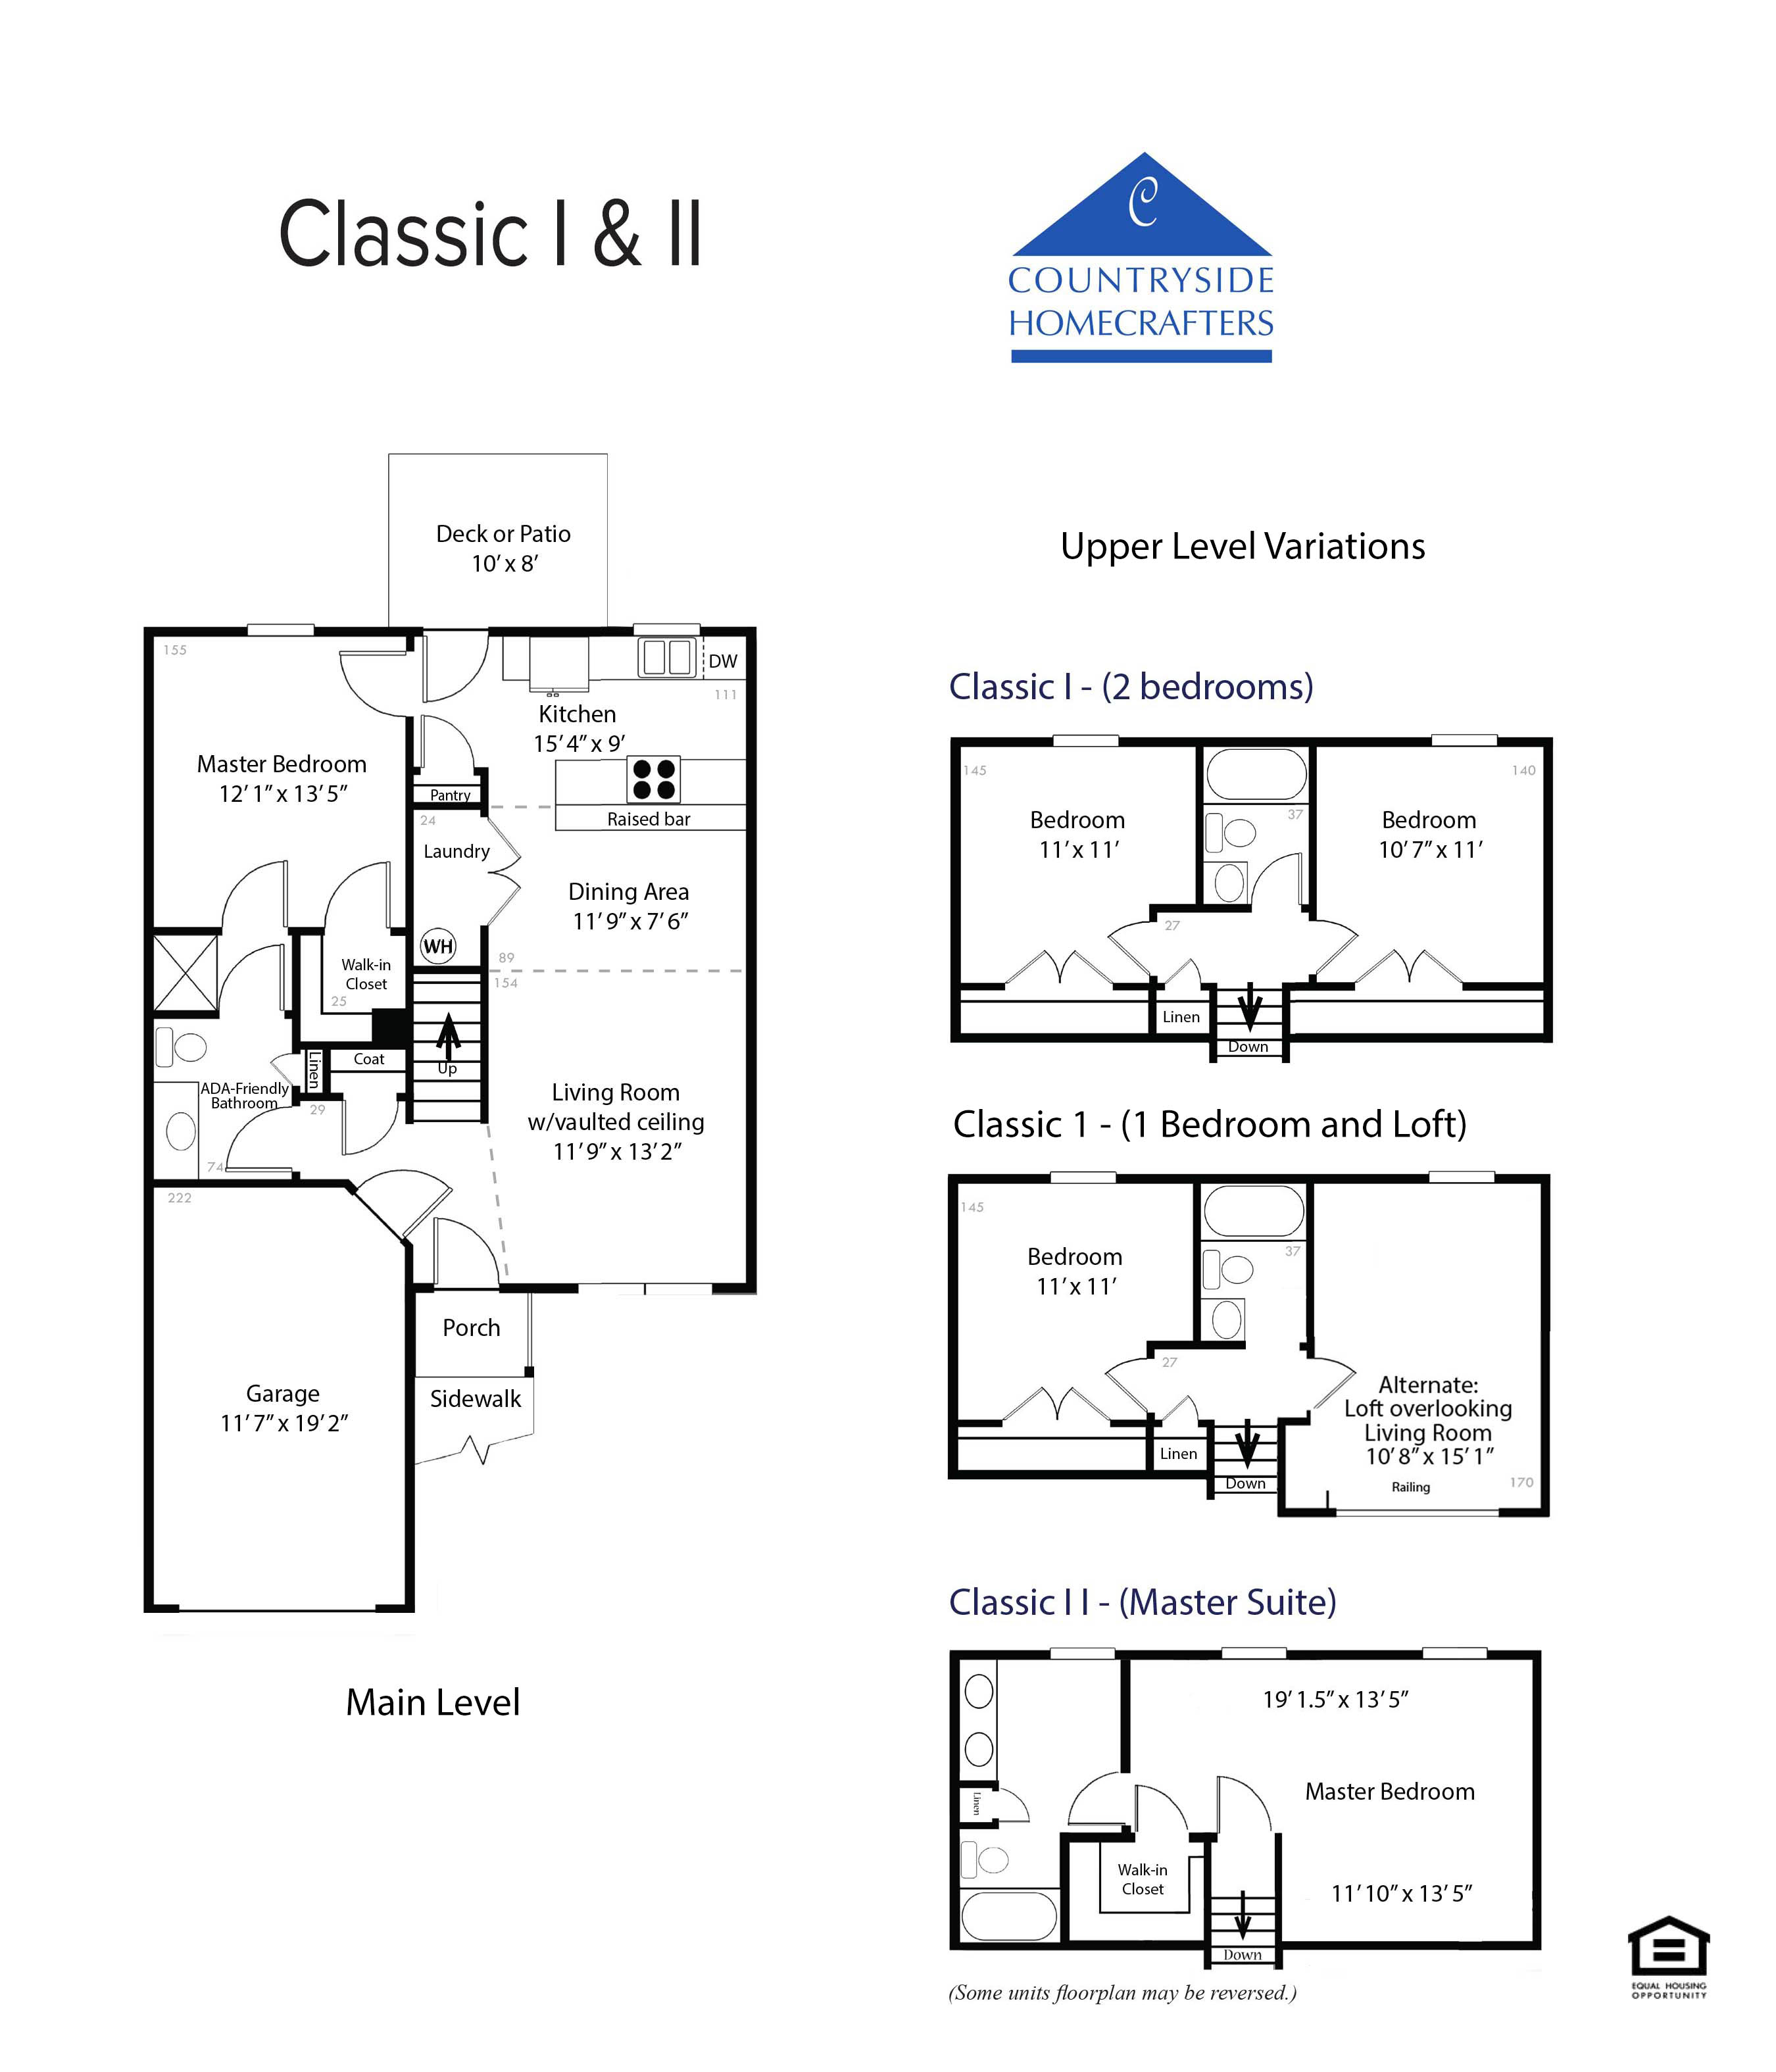 The classic i ii countryside homecrafters for Ici floor plans